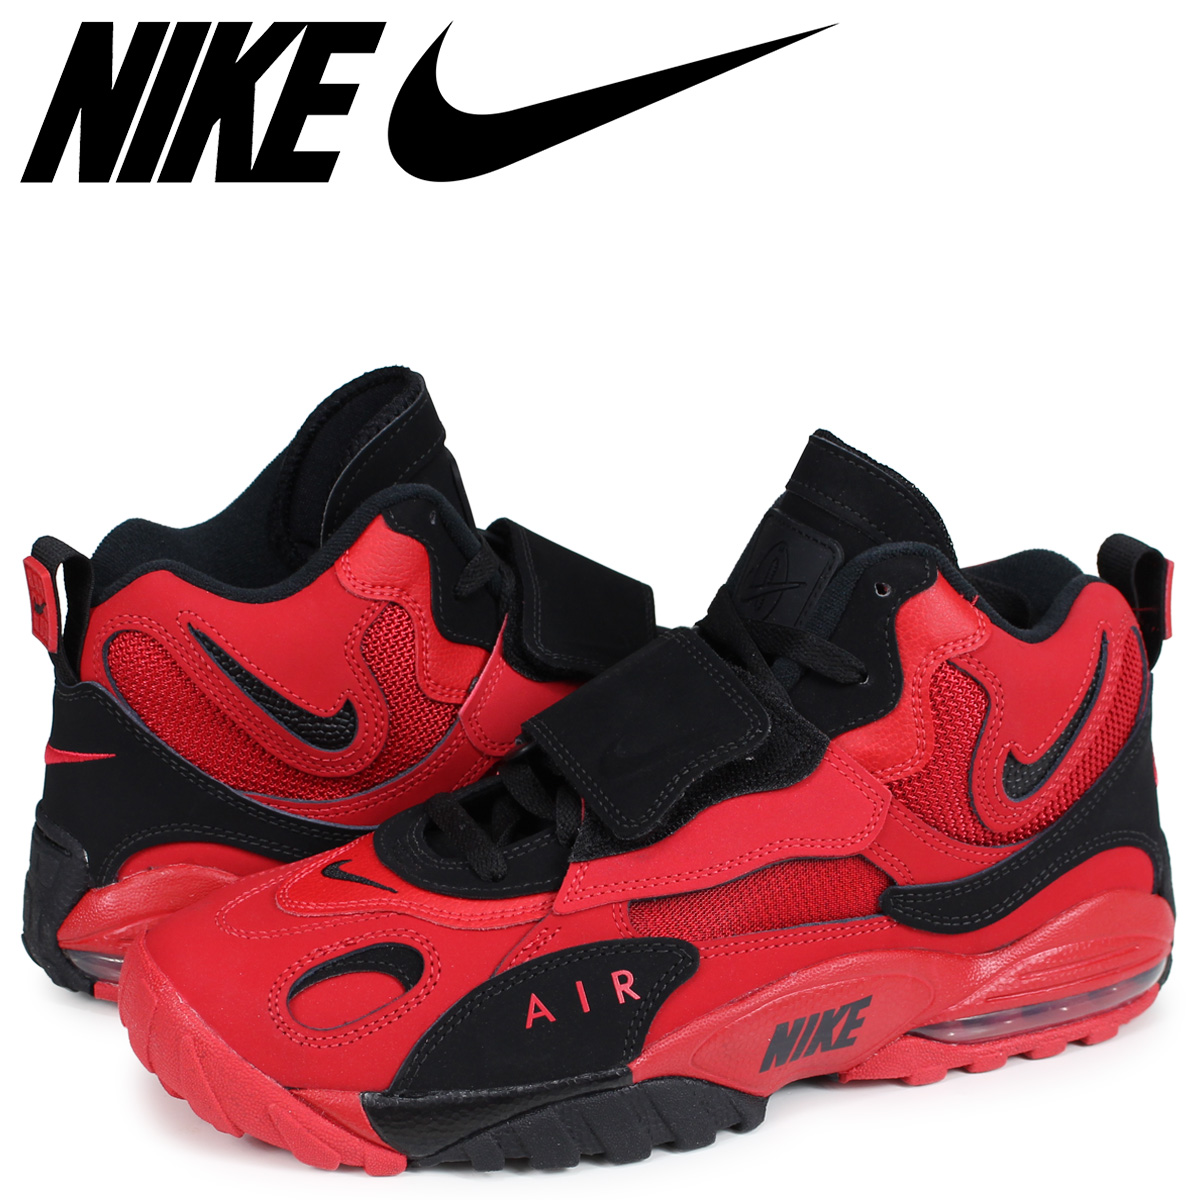 finest selection 23f03 1360f Categories. « All Categories · Shoes · Men s Shoes · Sneakers · NIKE AIR  MAX SPEED TURF Kie Ney AMAX sneakers men red AV7895-600